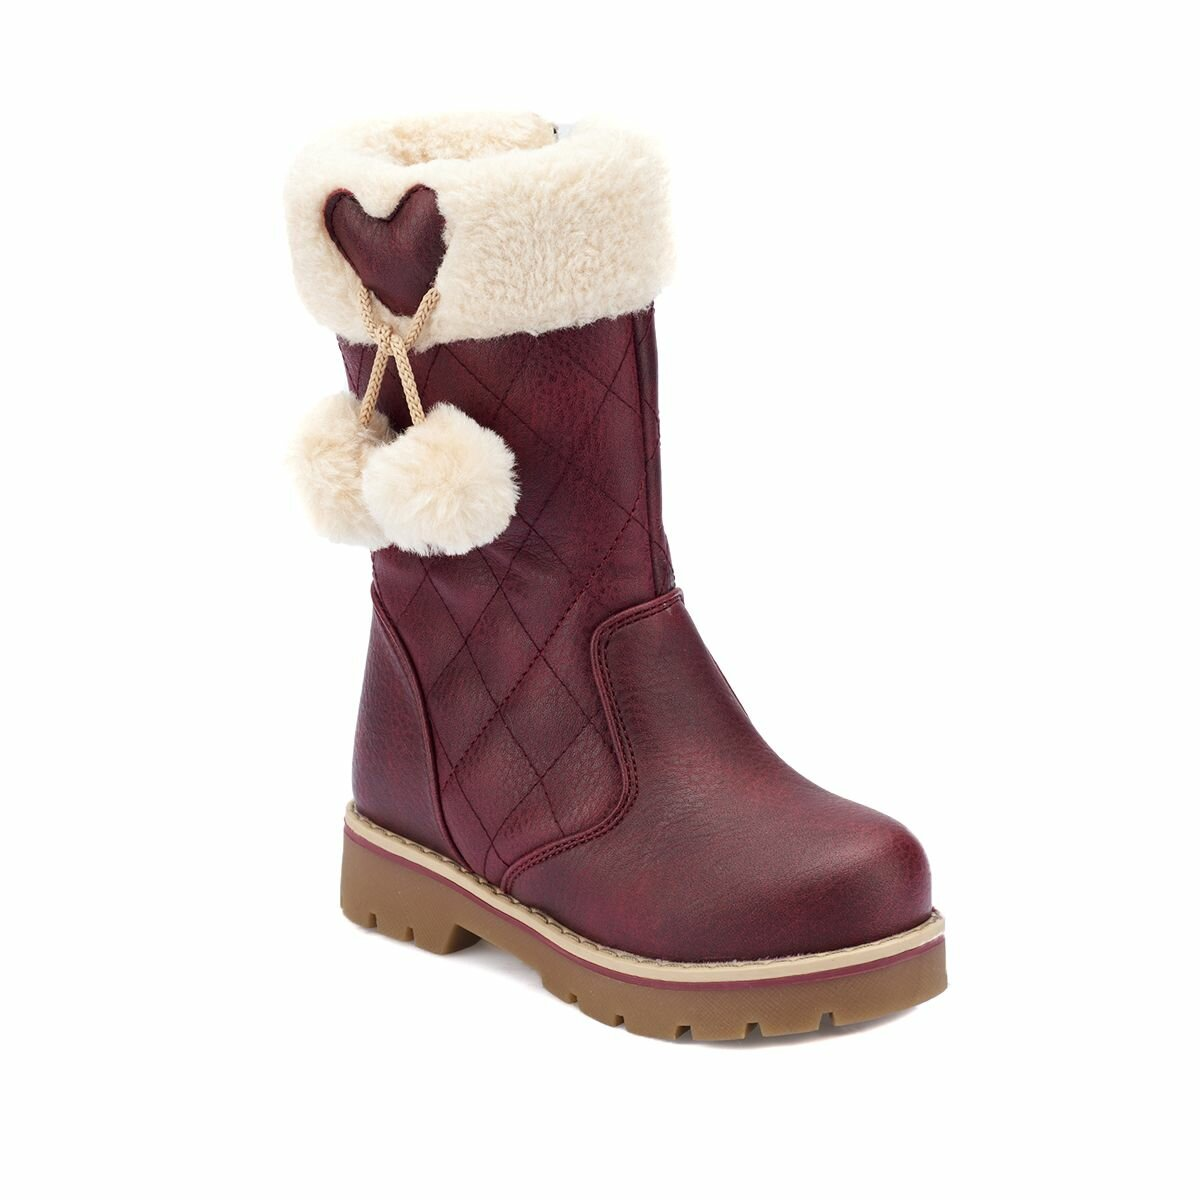 FLO 82.509618.P Burgundy Female Child Boots Polaris